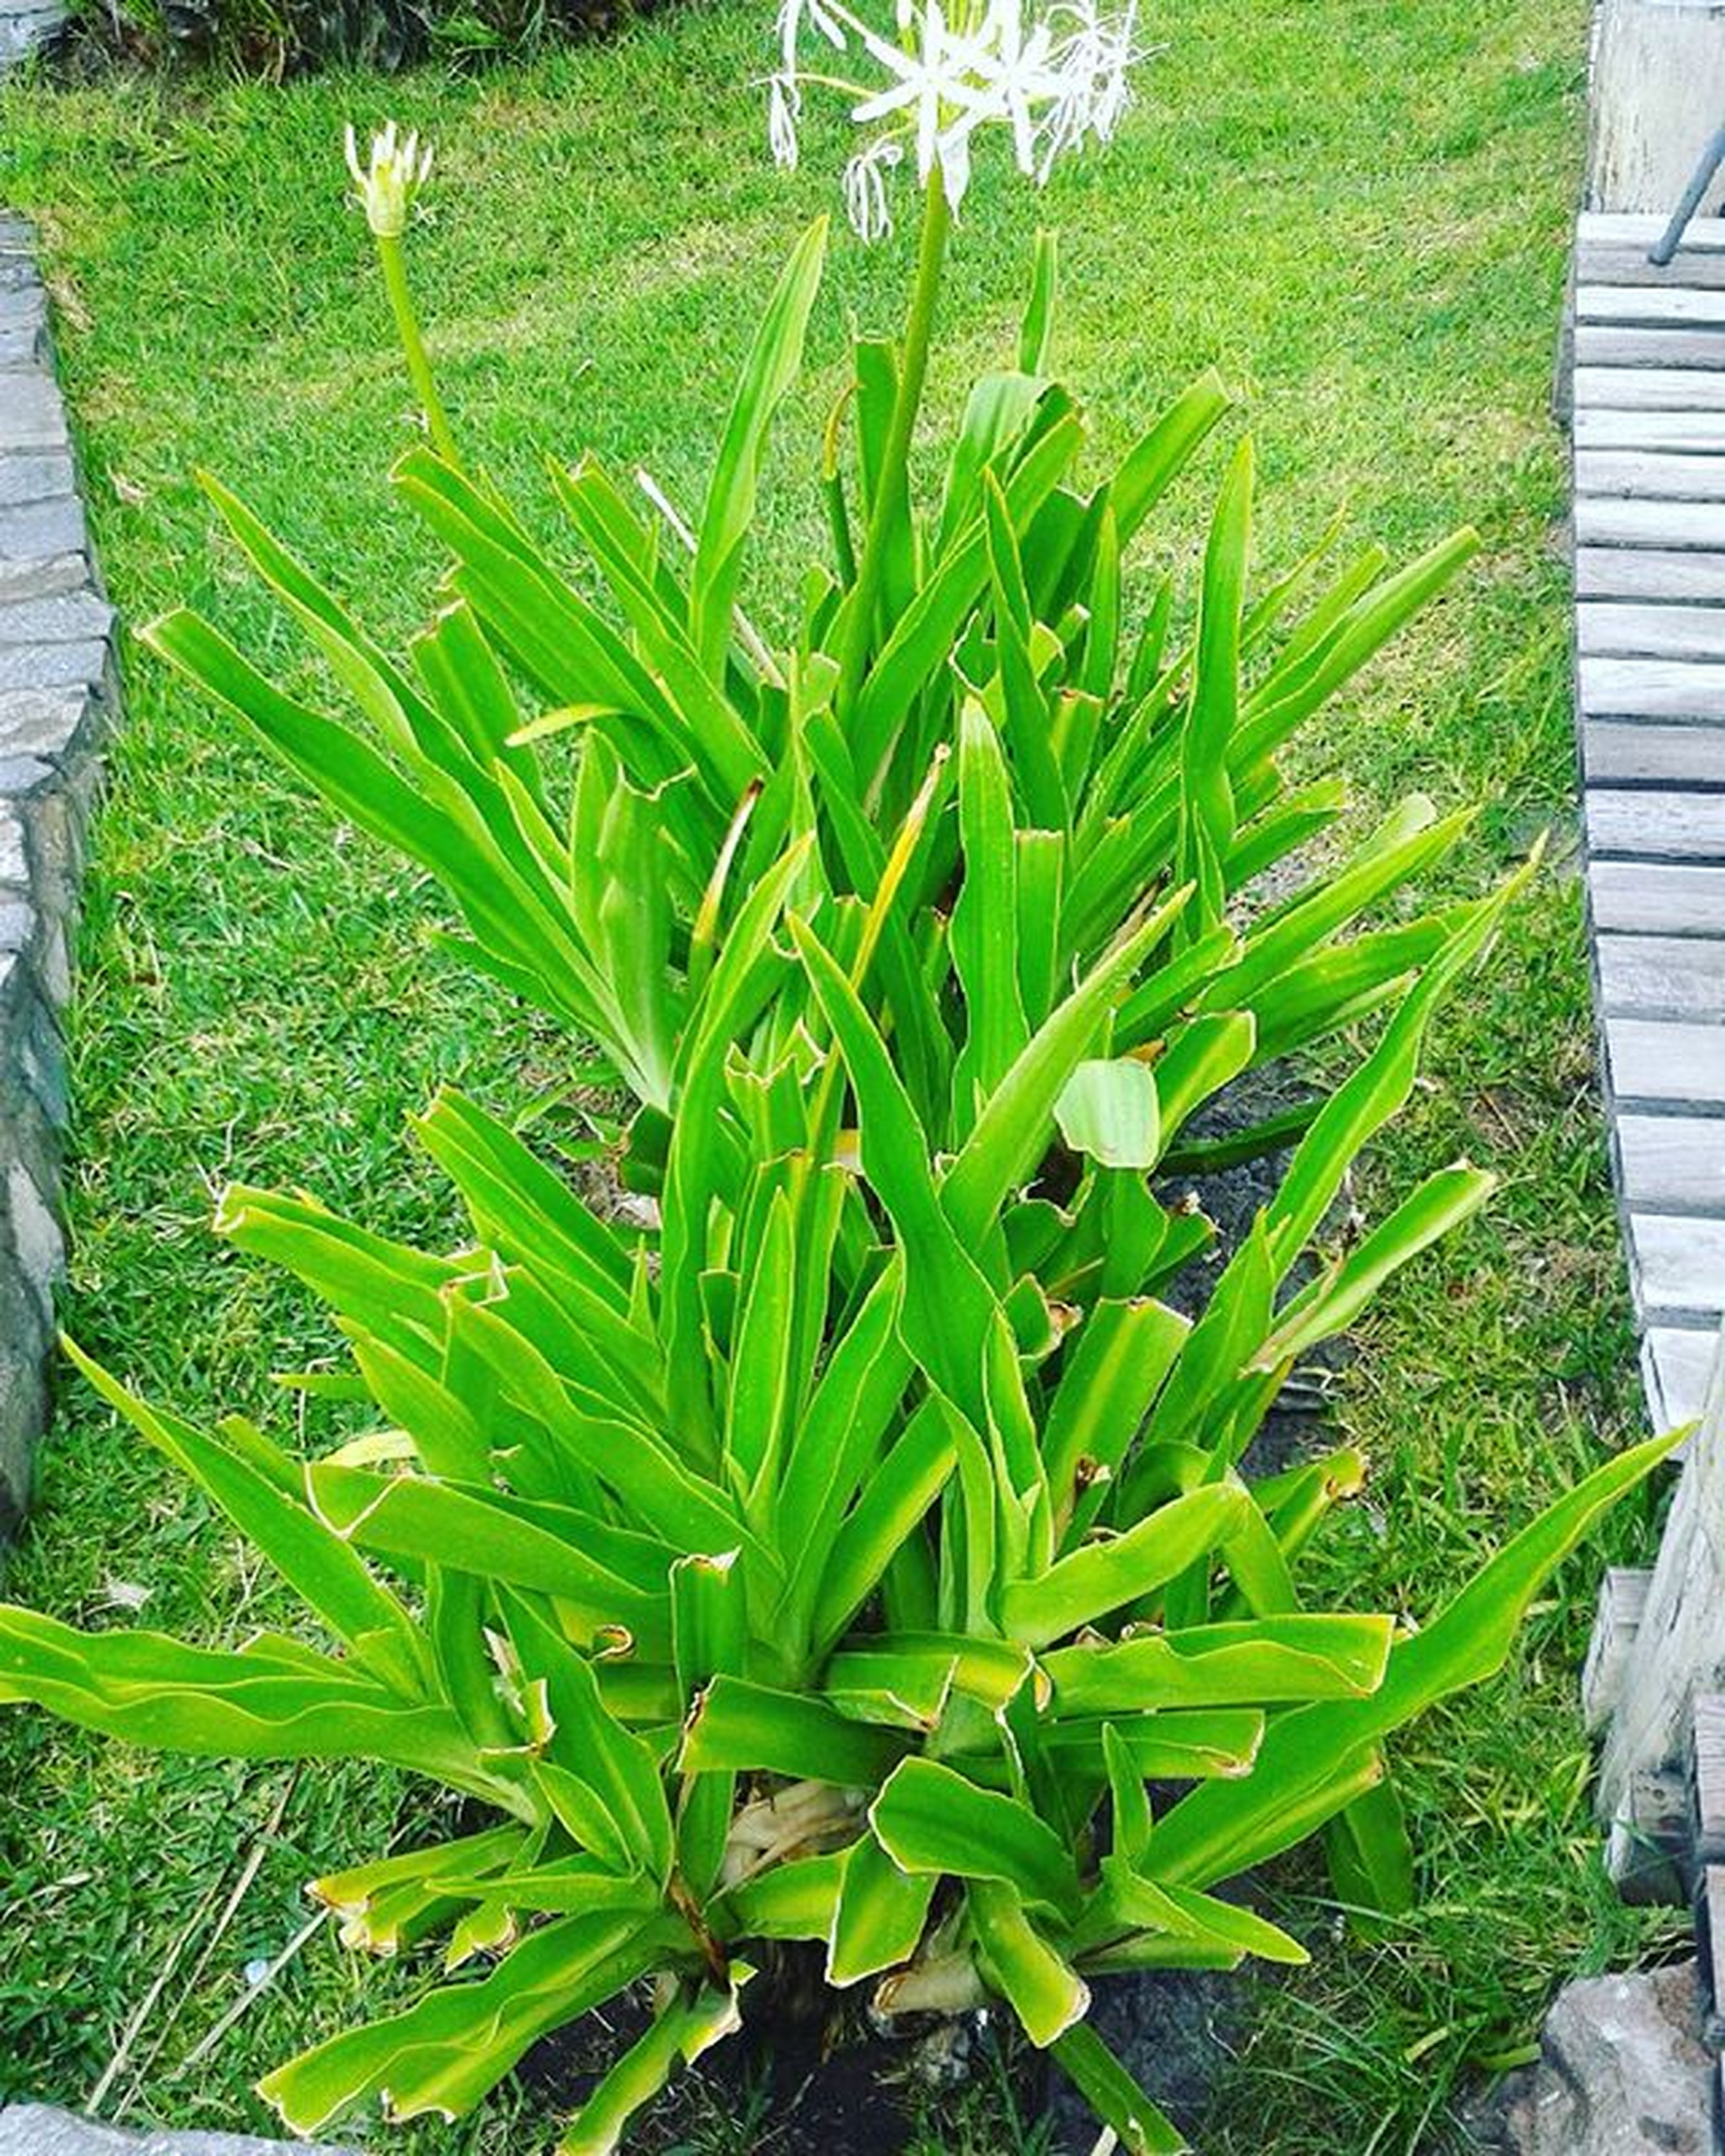 green color, growth, plant, leaf, high angle view, grass, nature, growing, sunlight, outdoors, day, beauty in nature, field, no people, front or back yard, green, freshness, tranquility, close-up, lush foliage